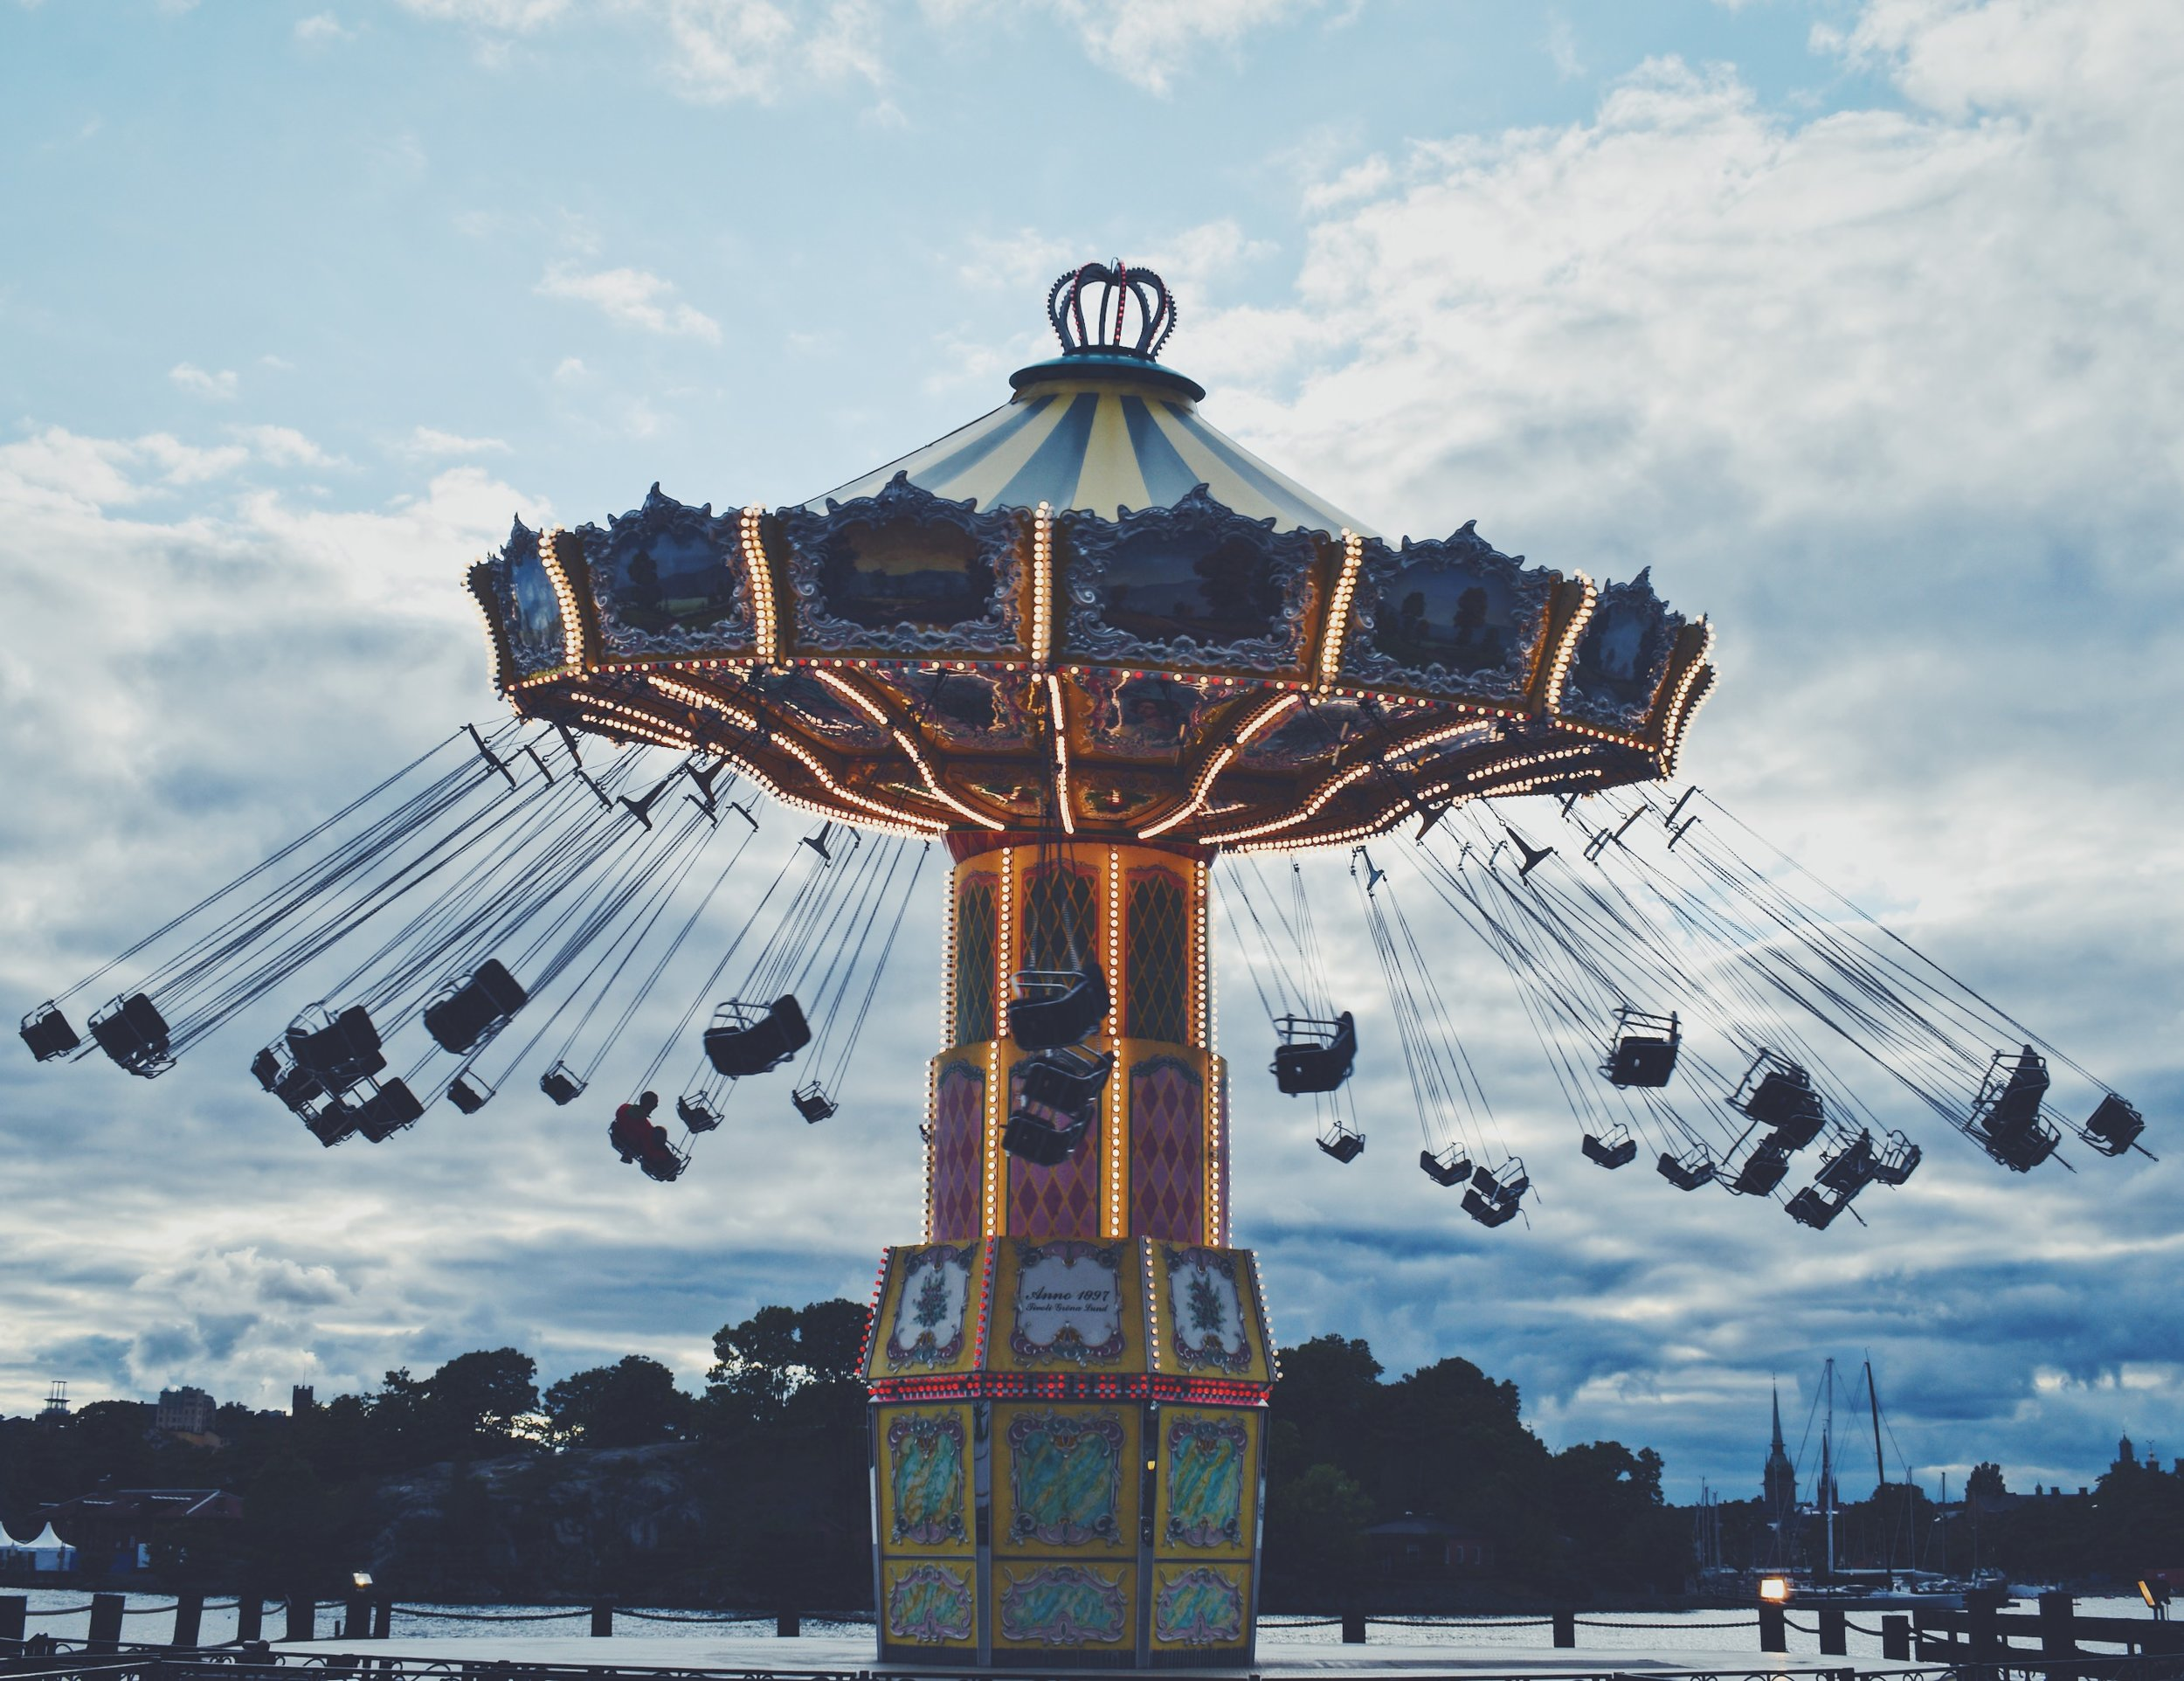 In the evening when the sun starts to set you can spot deers crossing the small paths in the park from the apple garden to the meadows. Ah it is just as dreamy as it sounds and a place I often visited to calm my thoughts.- Gröna Lund carousel